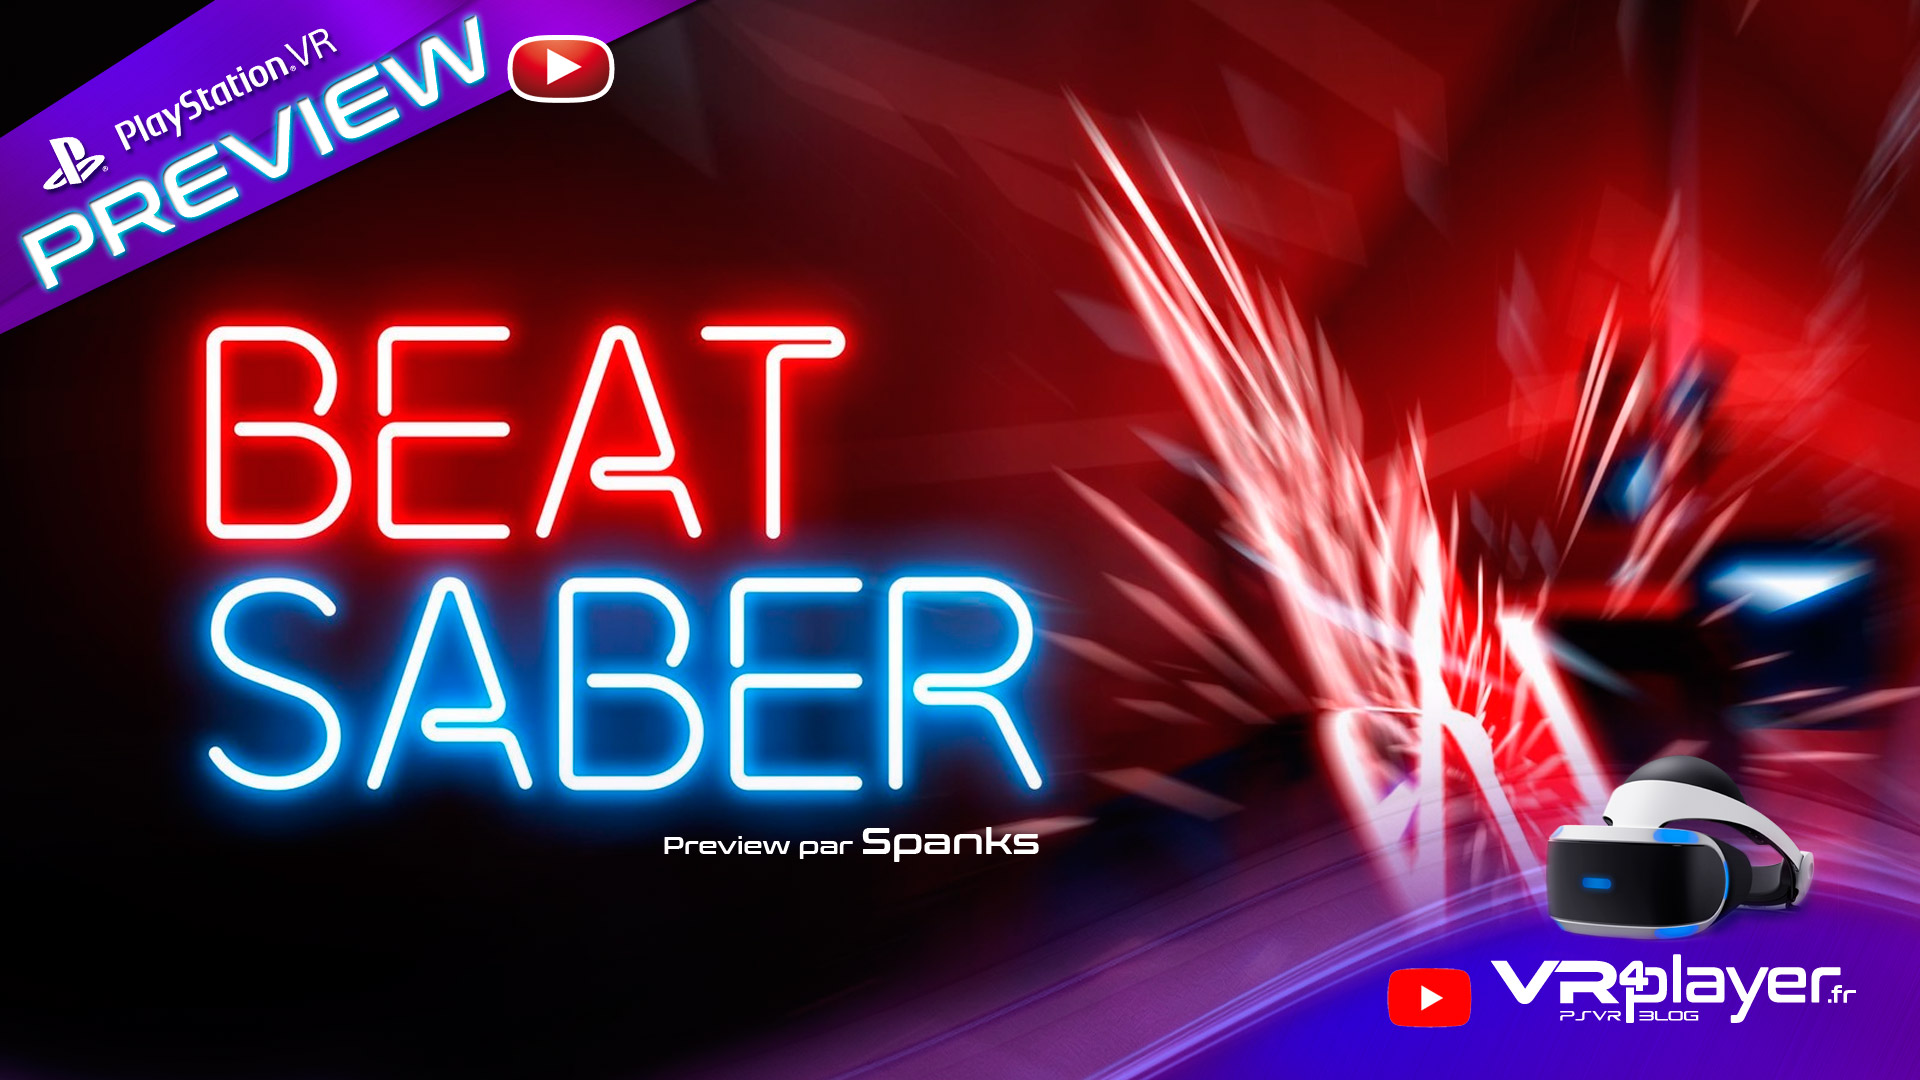 Beat Saber Preview sur PC en attendant la version PlayStation VR VR4Player